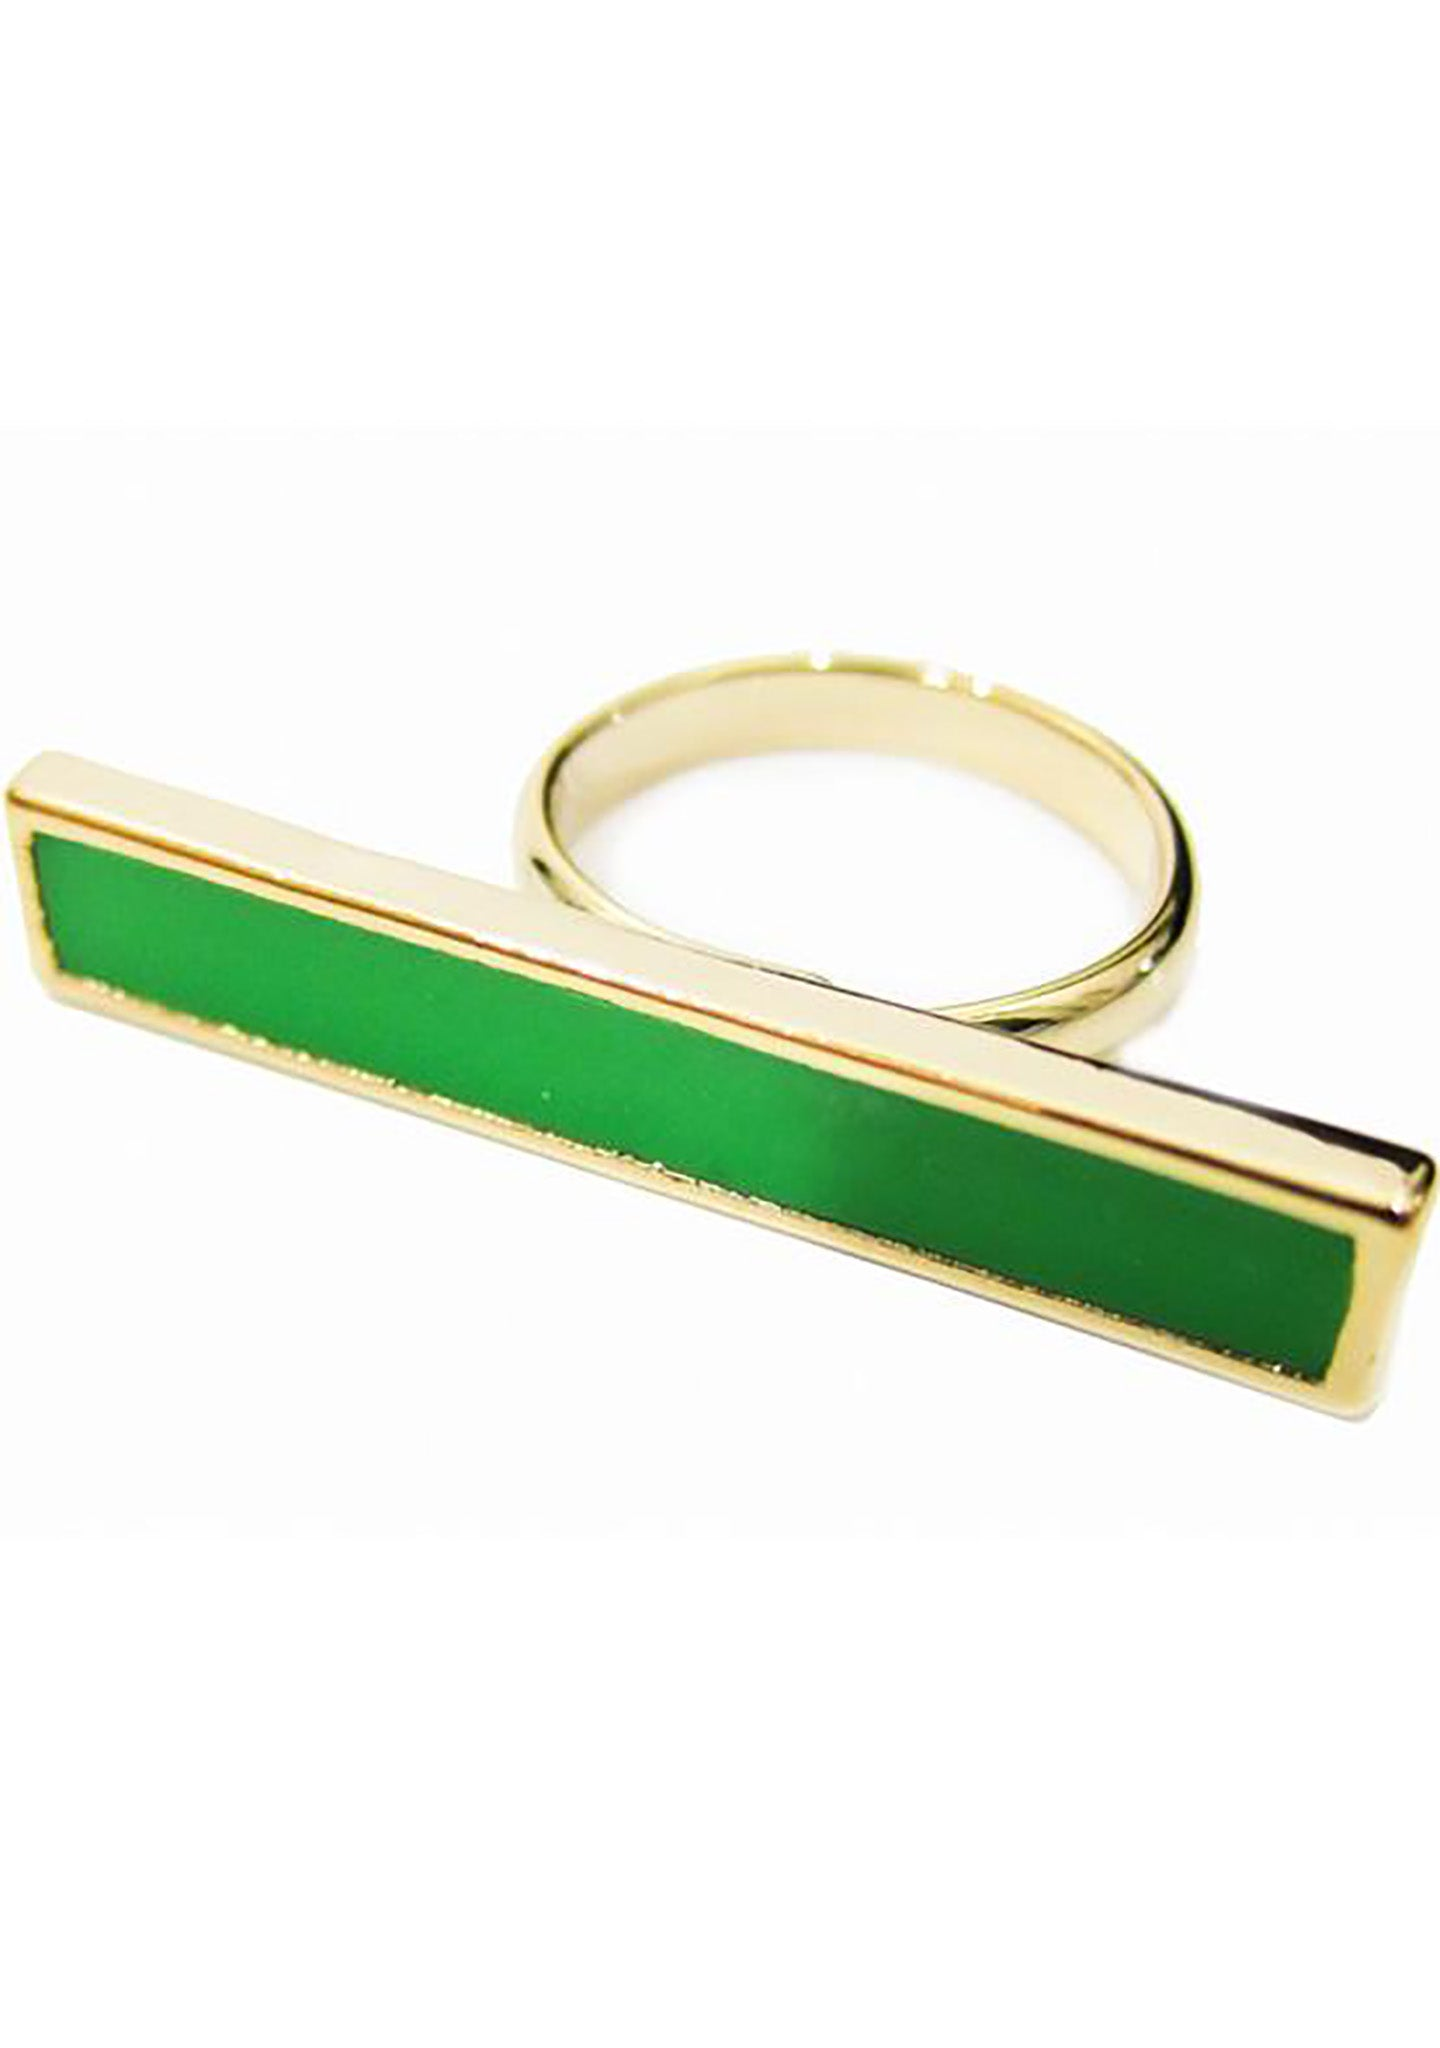 FASHô Neon Bar Ring in Neon Green